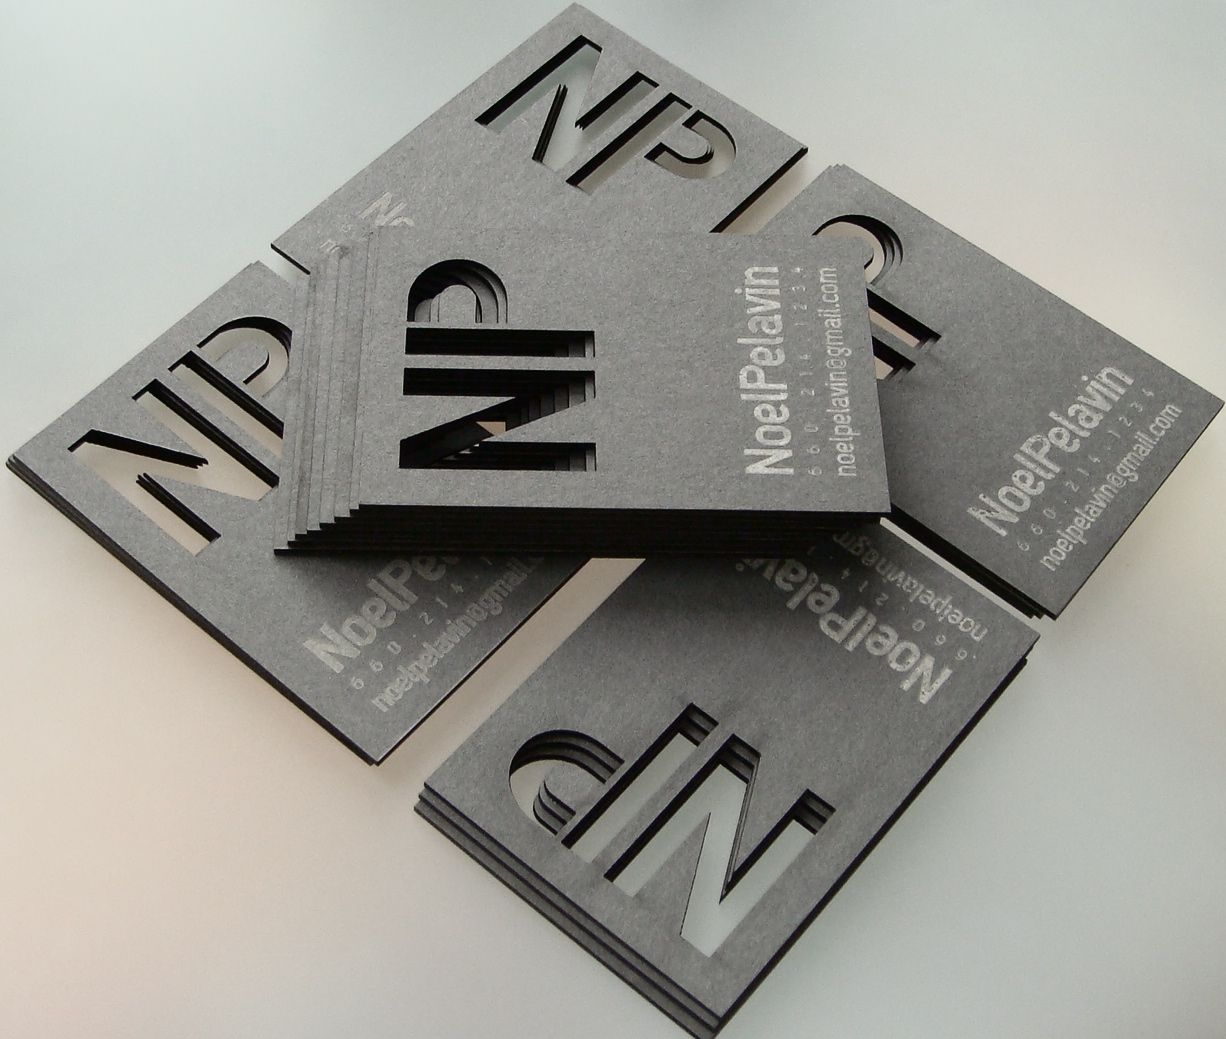 Noel Pelavin | Business cards, Business and Logos